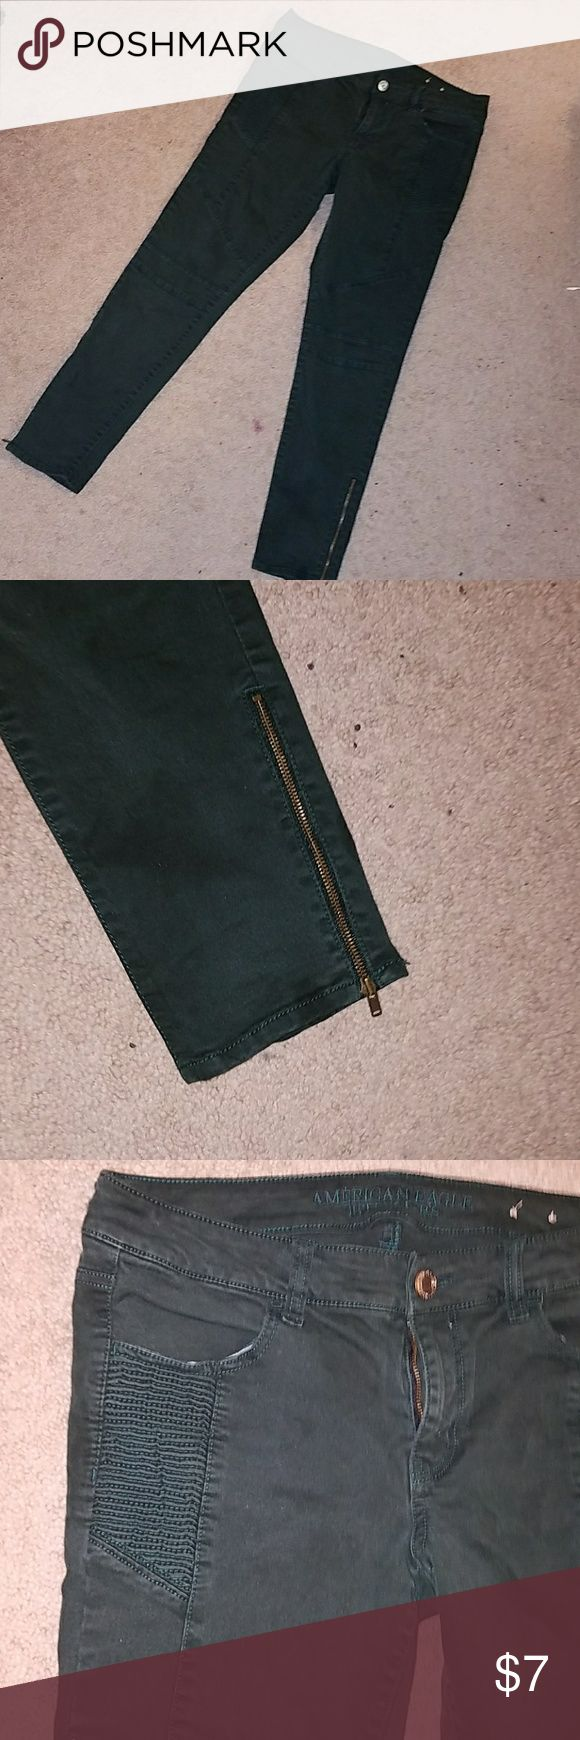 Dark green American Eagle Jeans Very dark green American Eagle Outfitters size 10 jeans.  There is ribbed detailing on the hips and zipper details at the bottom of the legs on the side. American Eagle Outfitters Pants Skinny